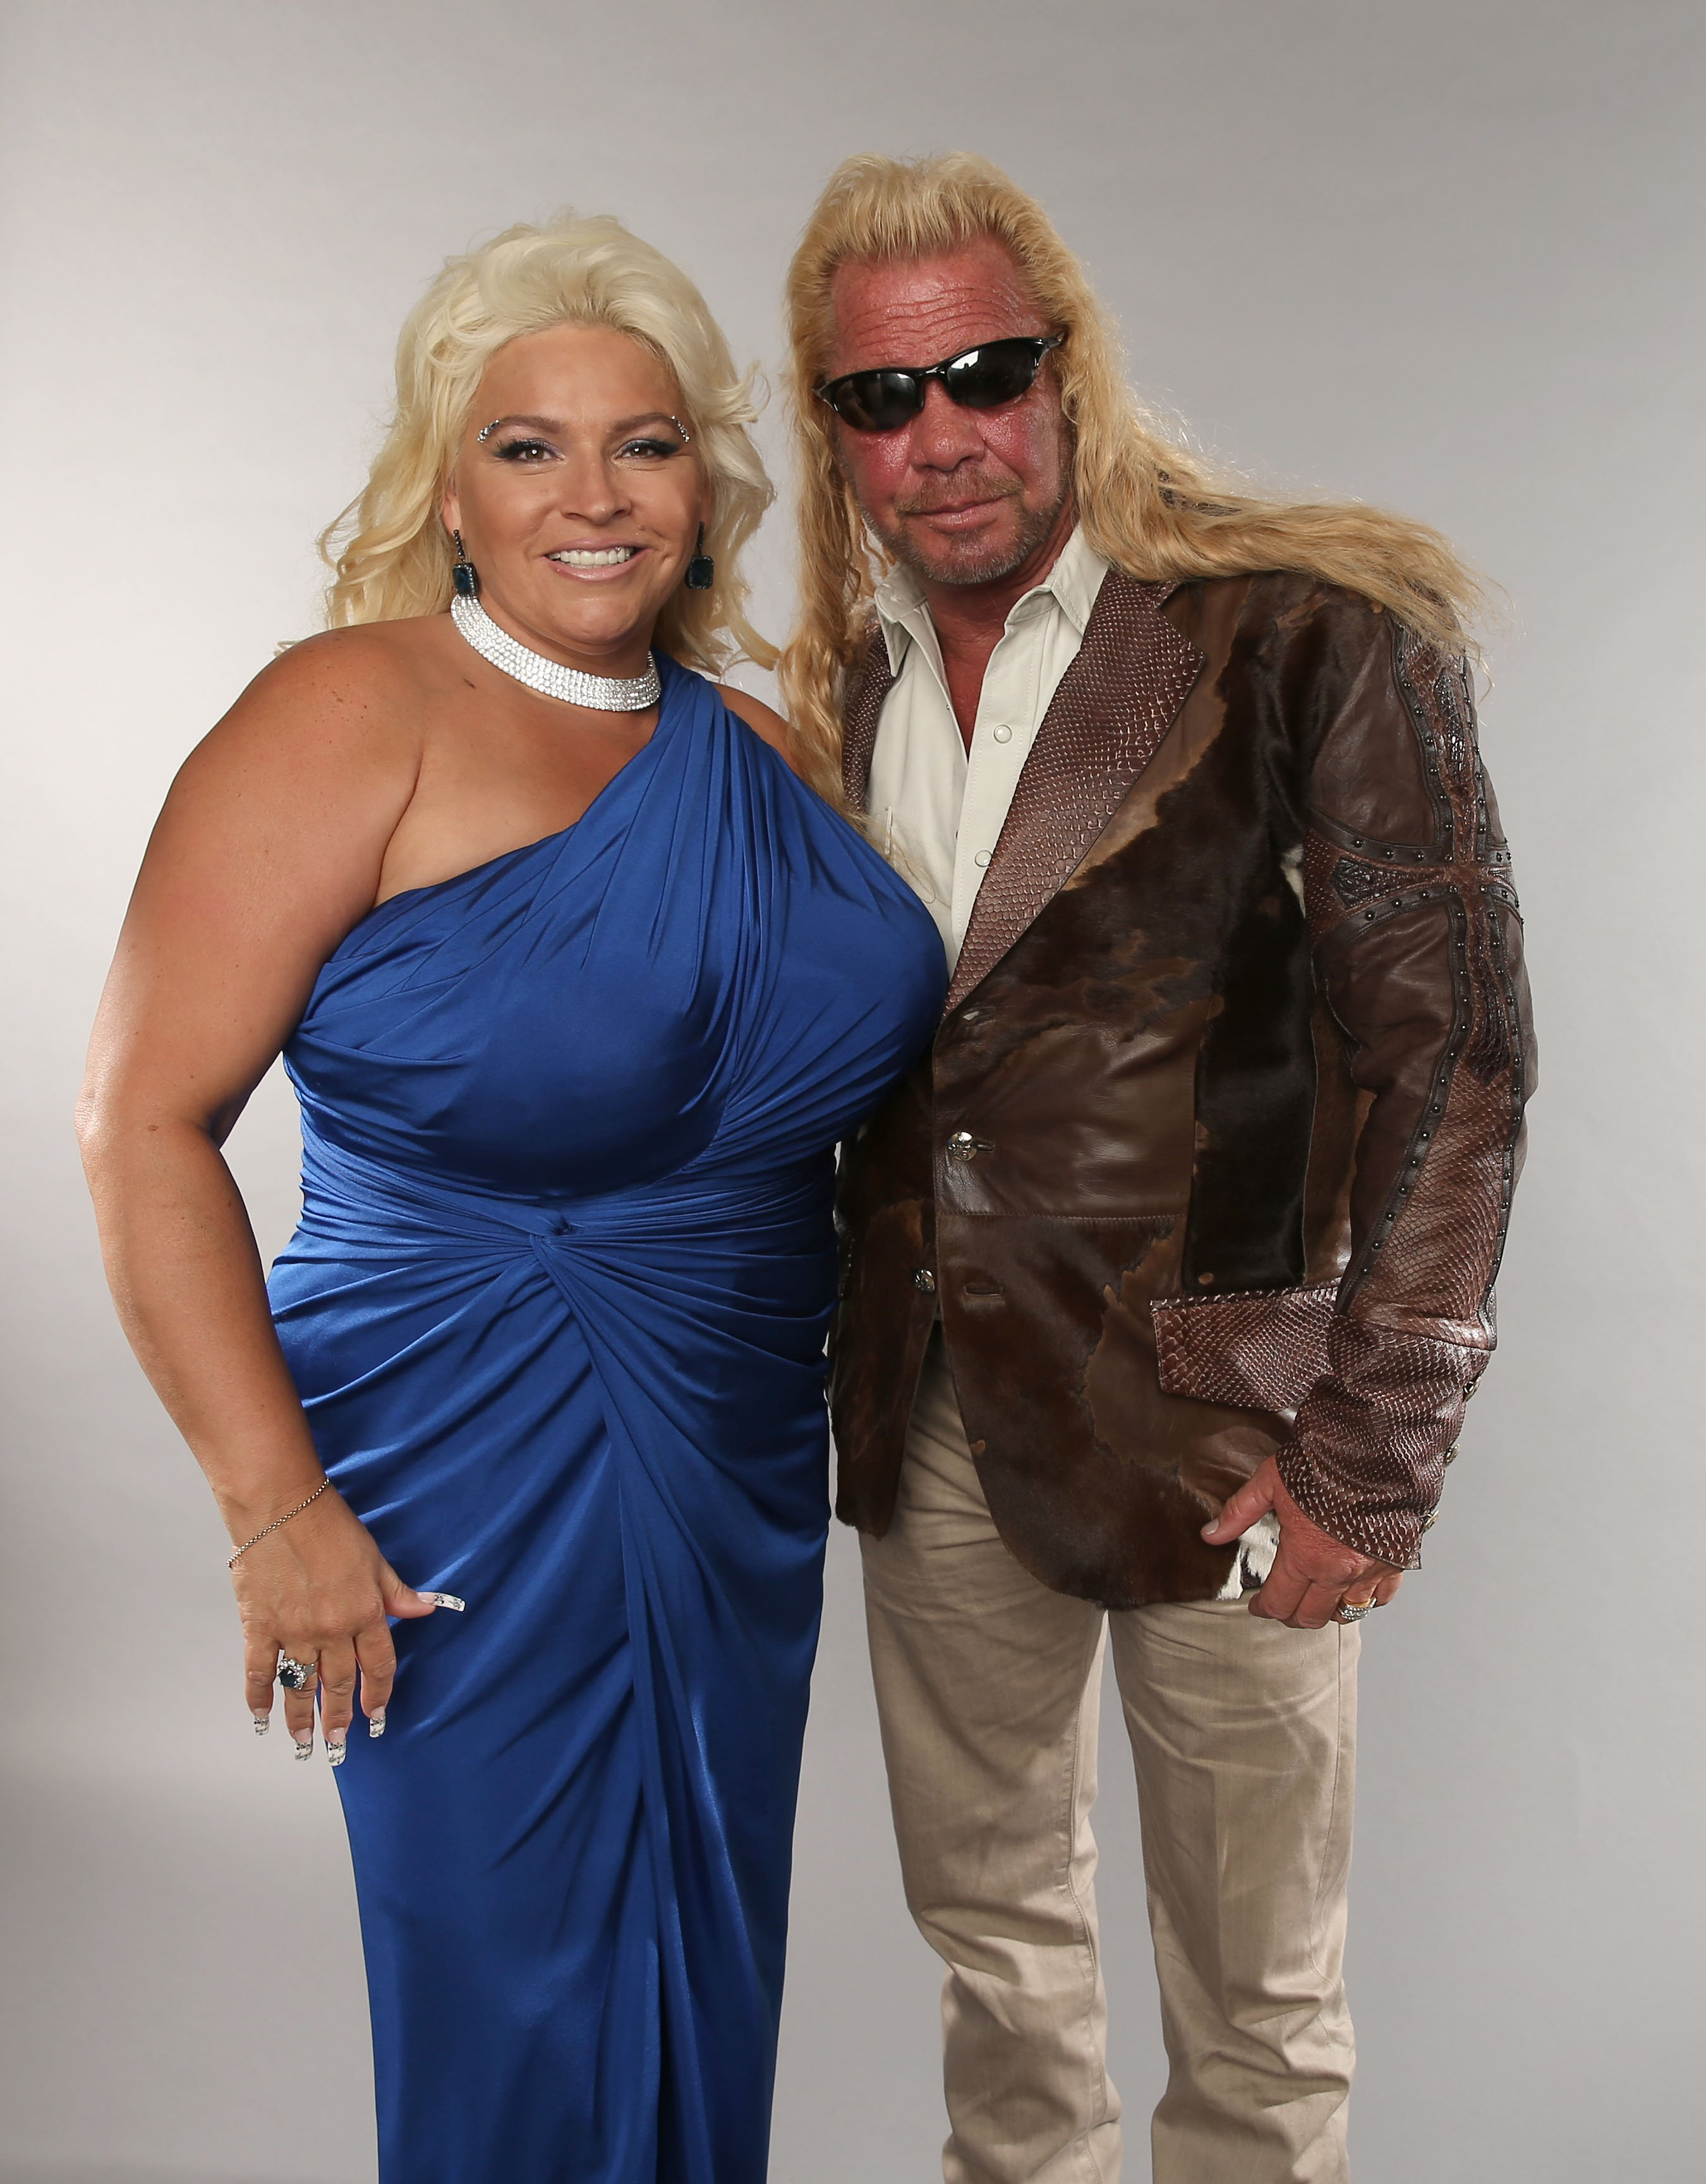 Duane Dog Lee Chapman and Beth Chapman pose at the Wonderwall portrait studio during the 2013 CMT Music Awards. | Source: Getty Images